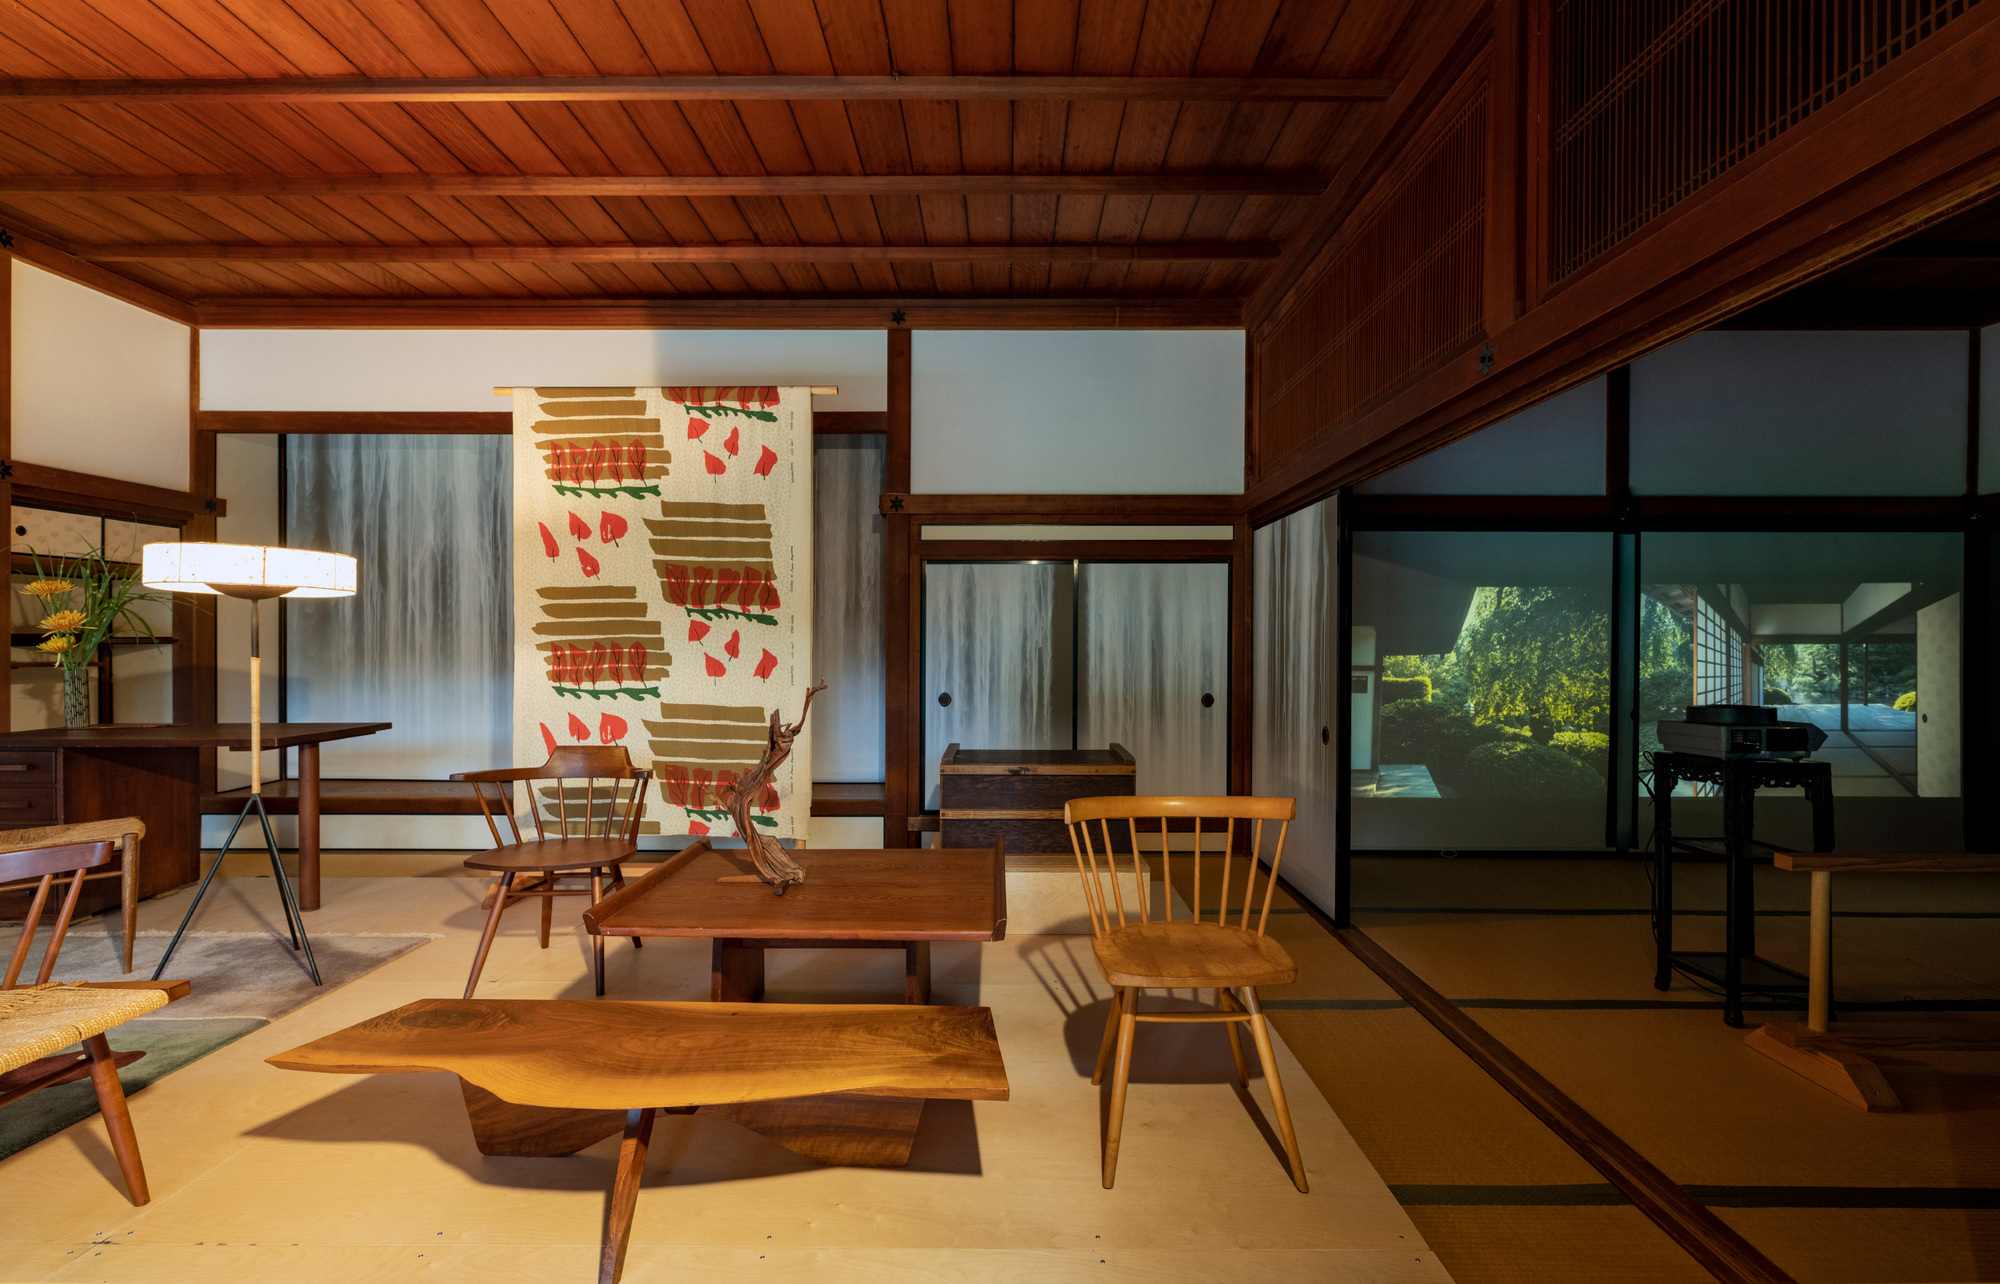 'Shofuso and Modernism' Revisits a Major Mid-Century East-West Cultural Exchange